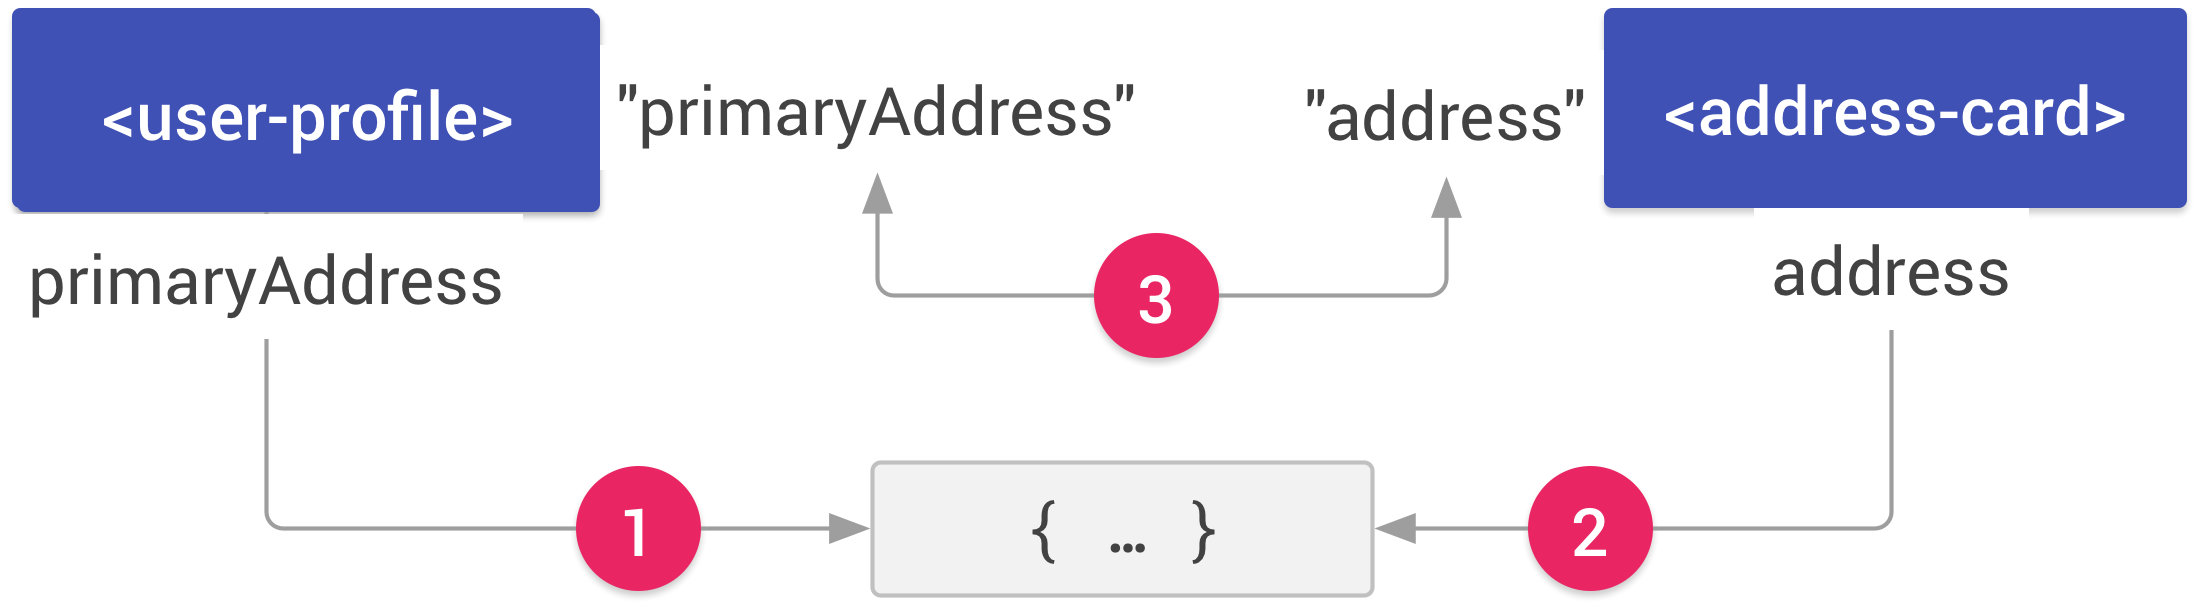 Two elements, user-profile and address-card, both referring to a shared JavaScript object. An arrow labeled 1 connects the primaryAddress property on the user-profile element to the object. An arrow labeled 2 connects the address property on the address-card element to the same object. An double-headed arrow labeled 3 connects the path primaryAddress on user-profile to the path address on address-card.